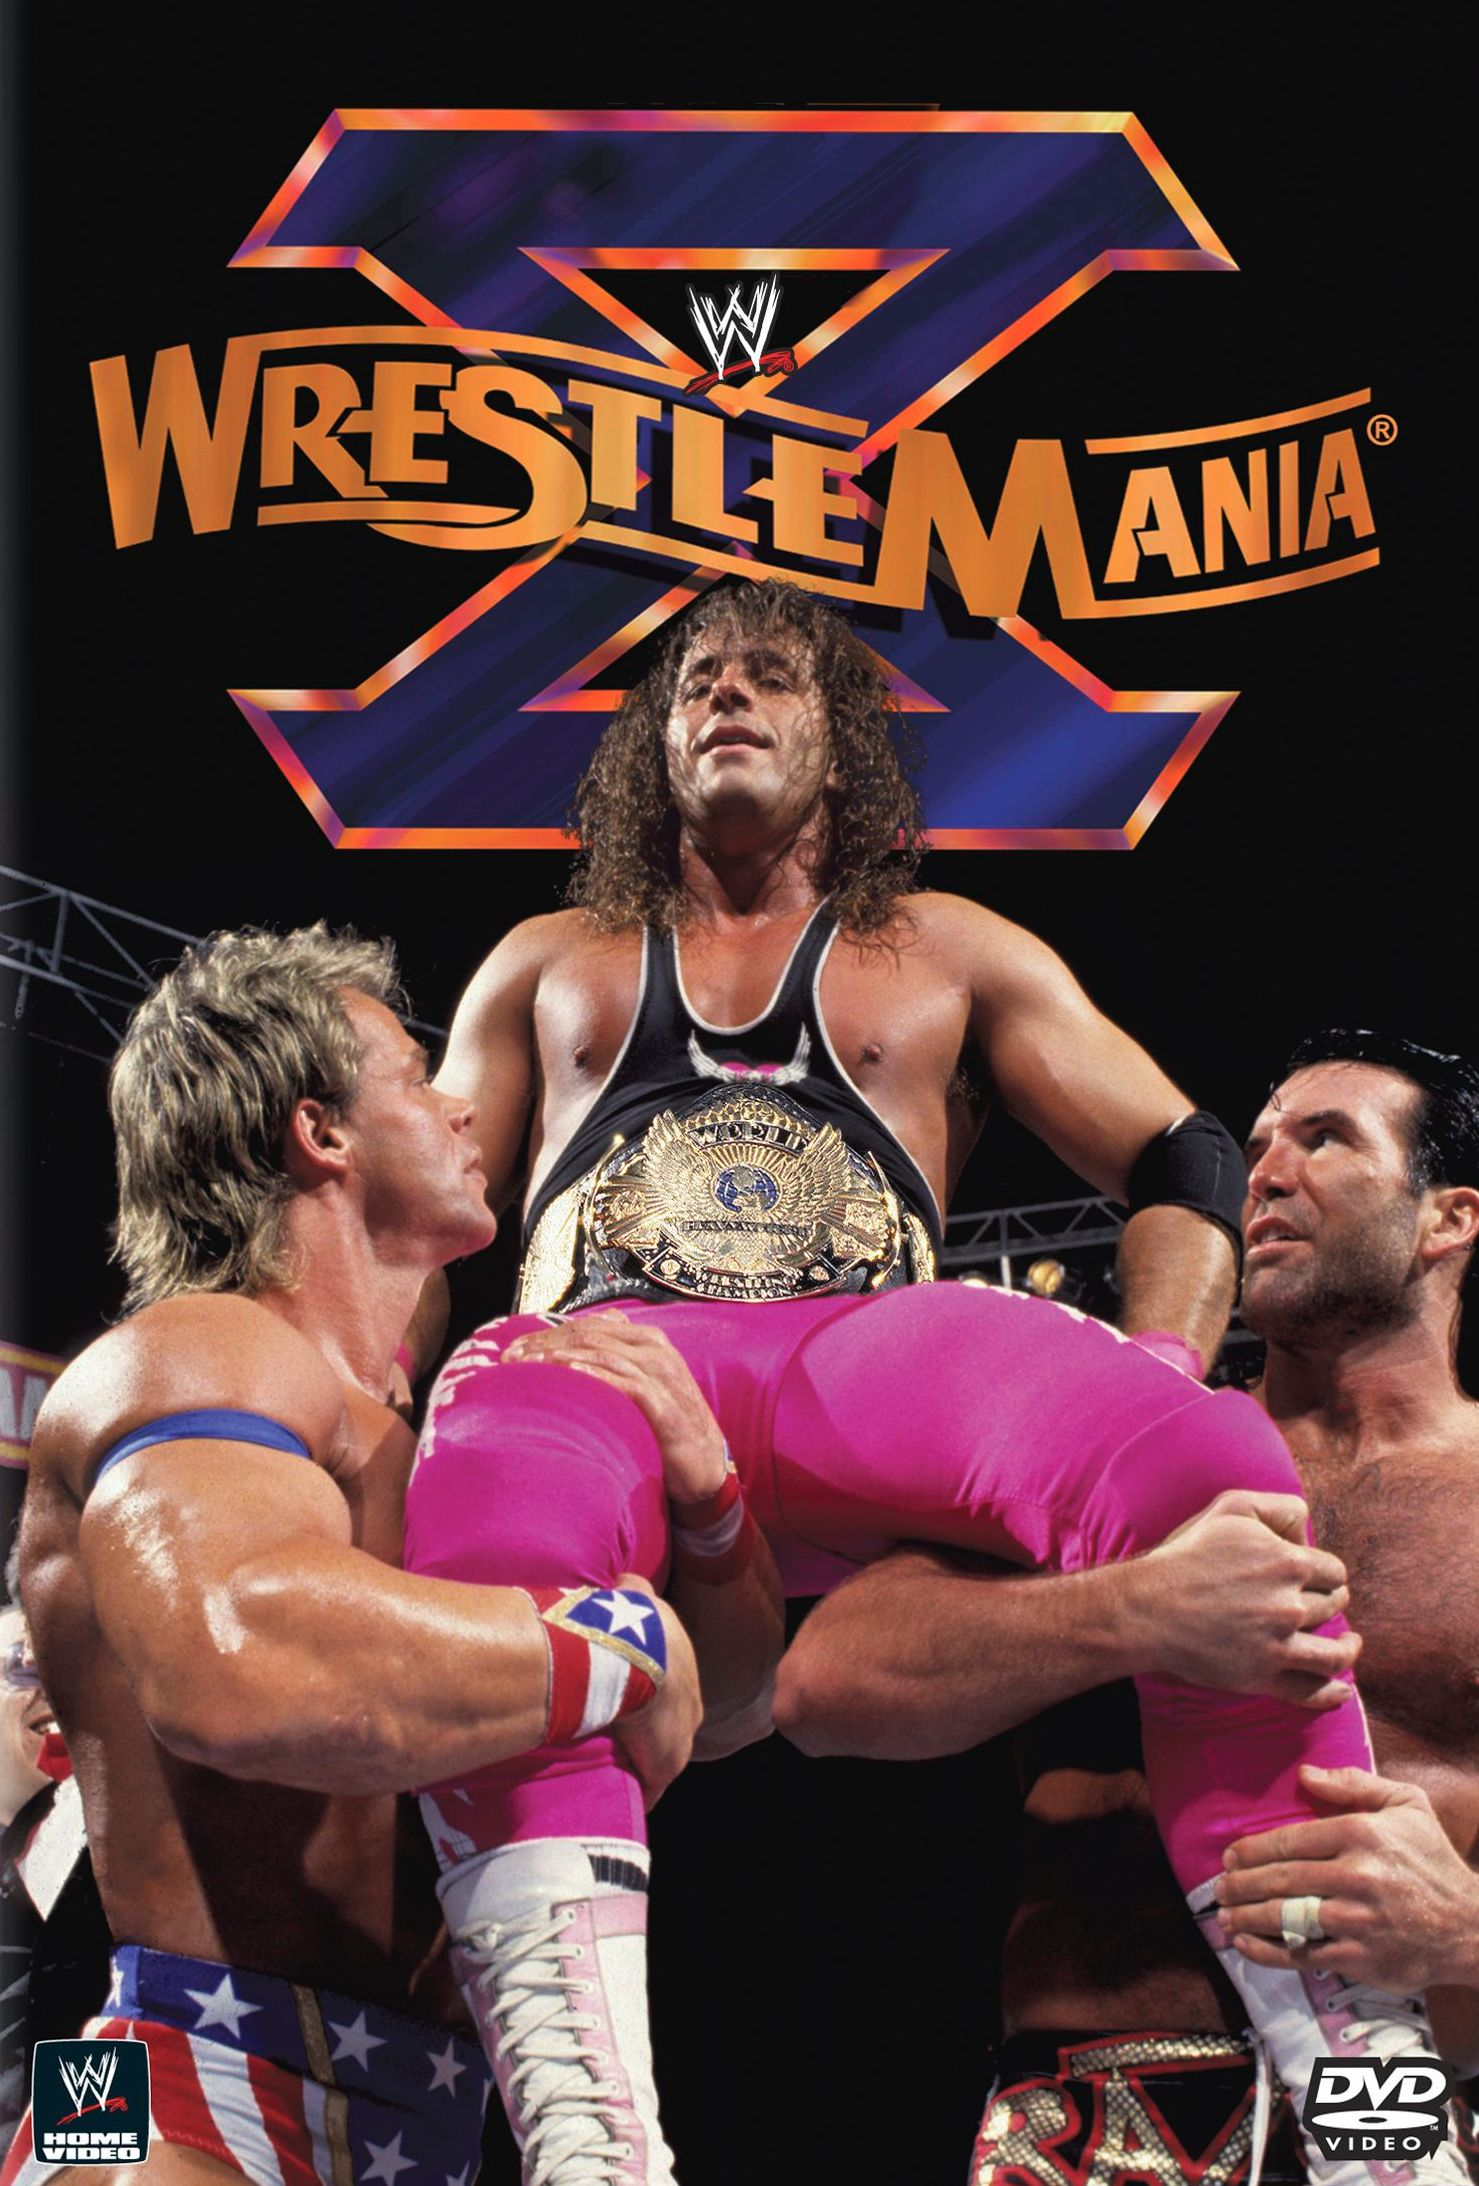 WWE: Wrestlemania X